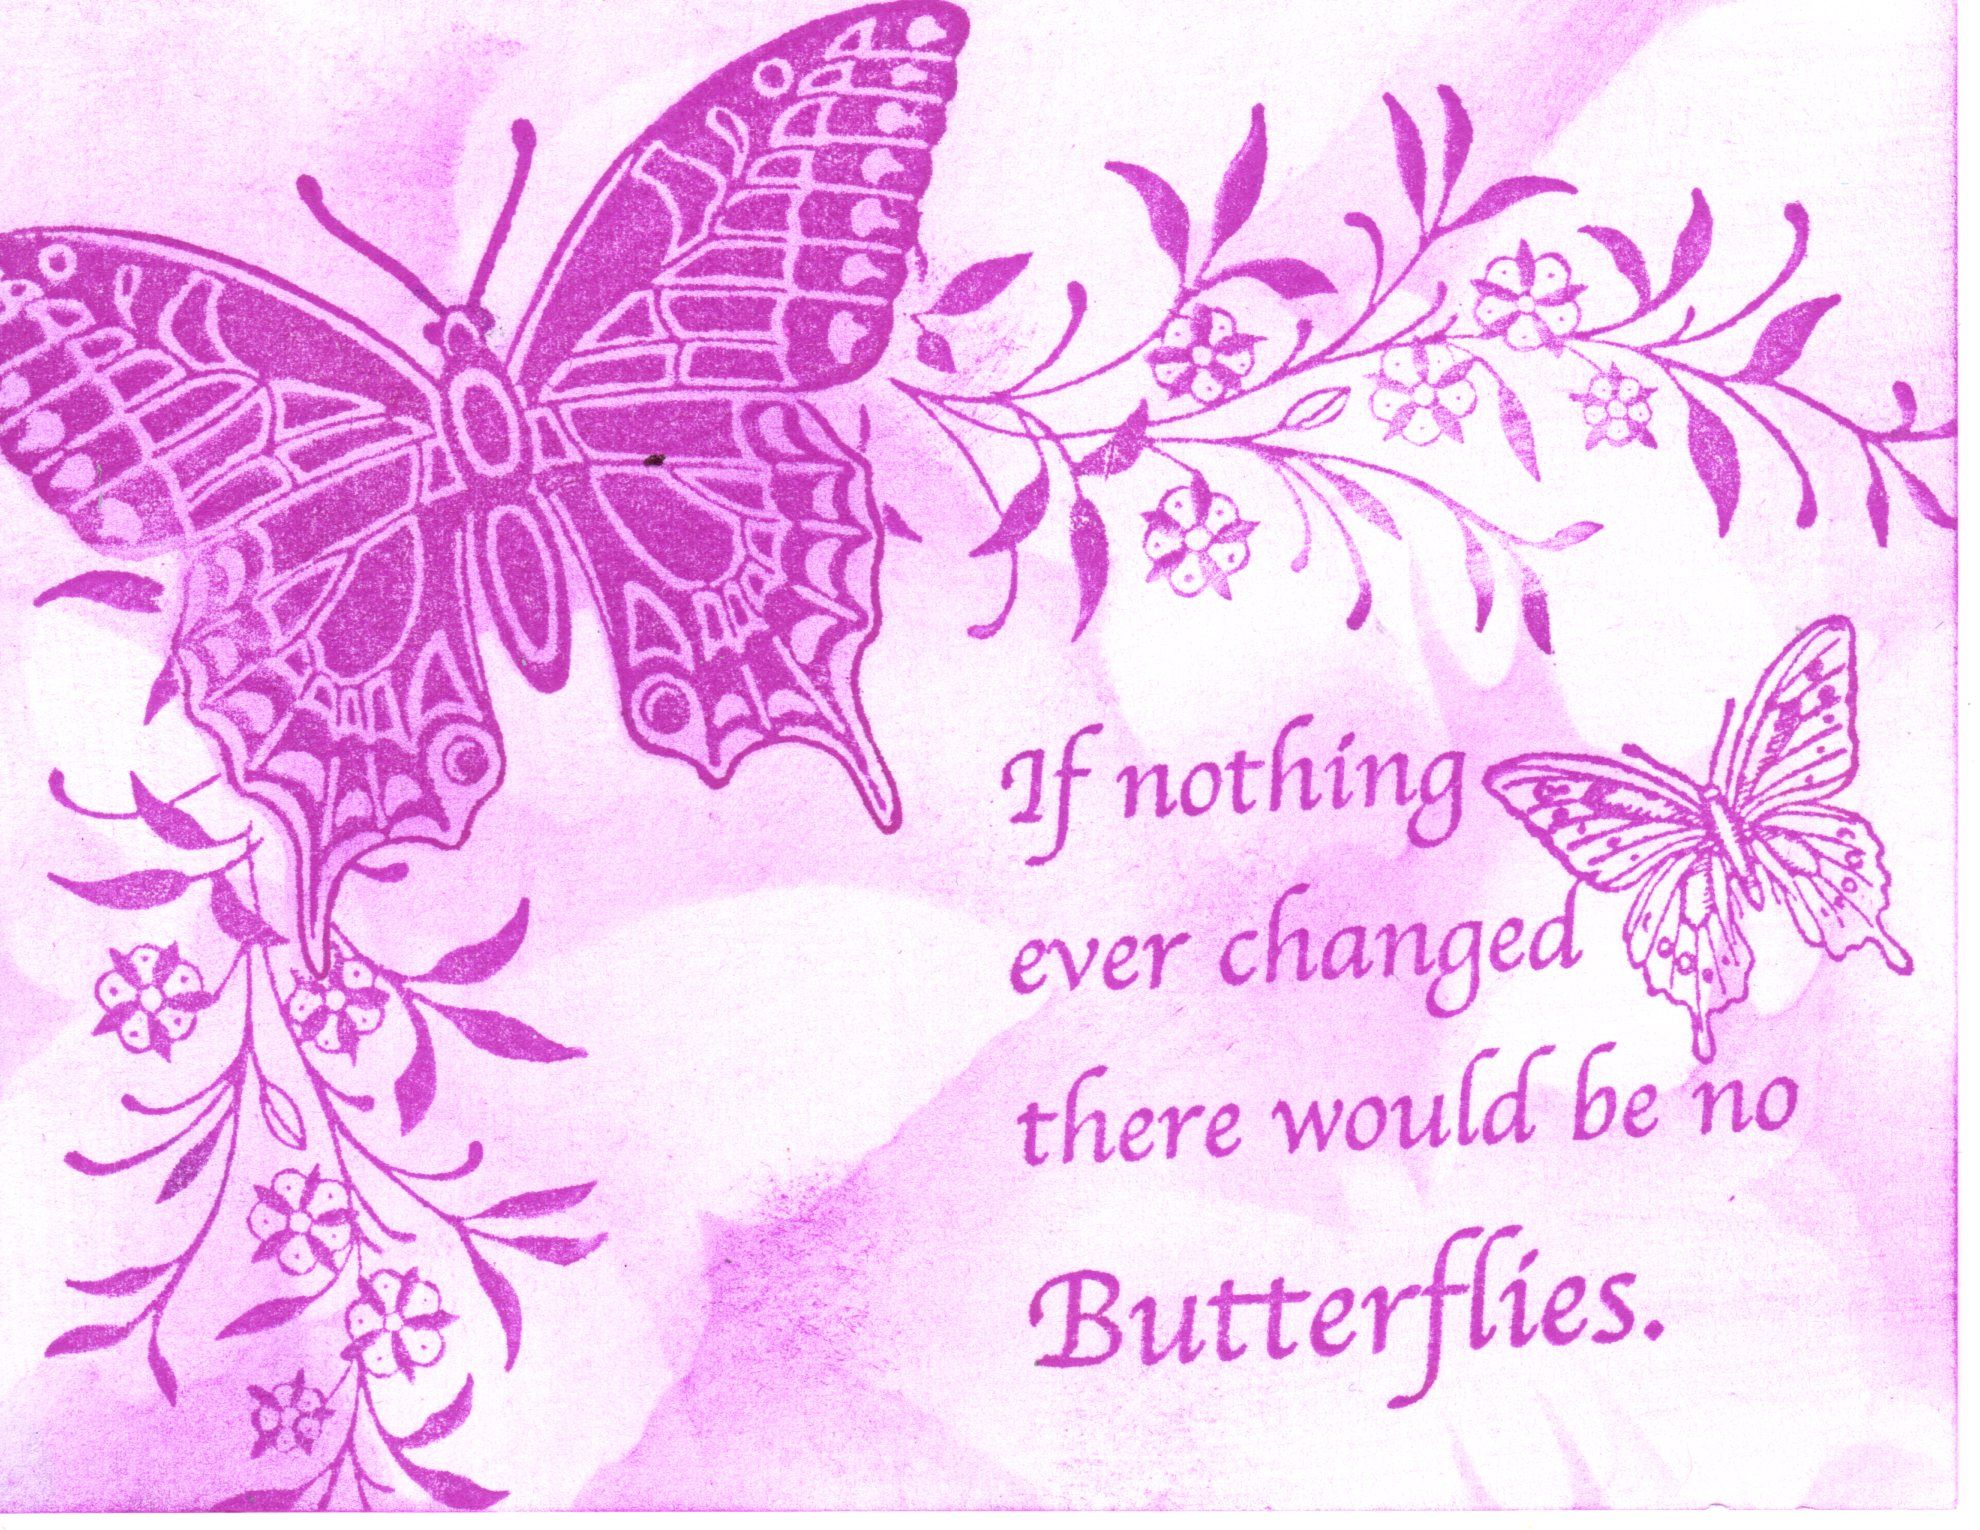 Butterfly cloud background is the interior of the template with color buffed around it.  Used our art tape to mask the butterfly and then deepened the color using the template and brushing color over the image.  Love the sentiment.